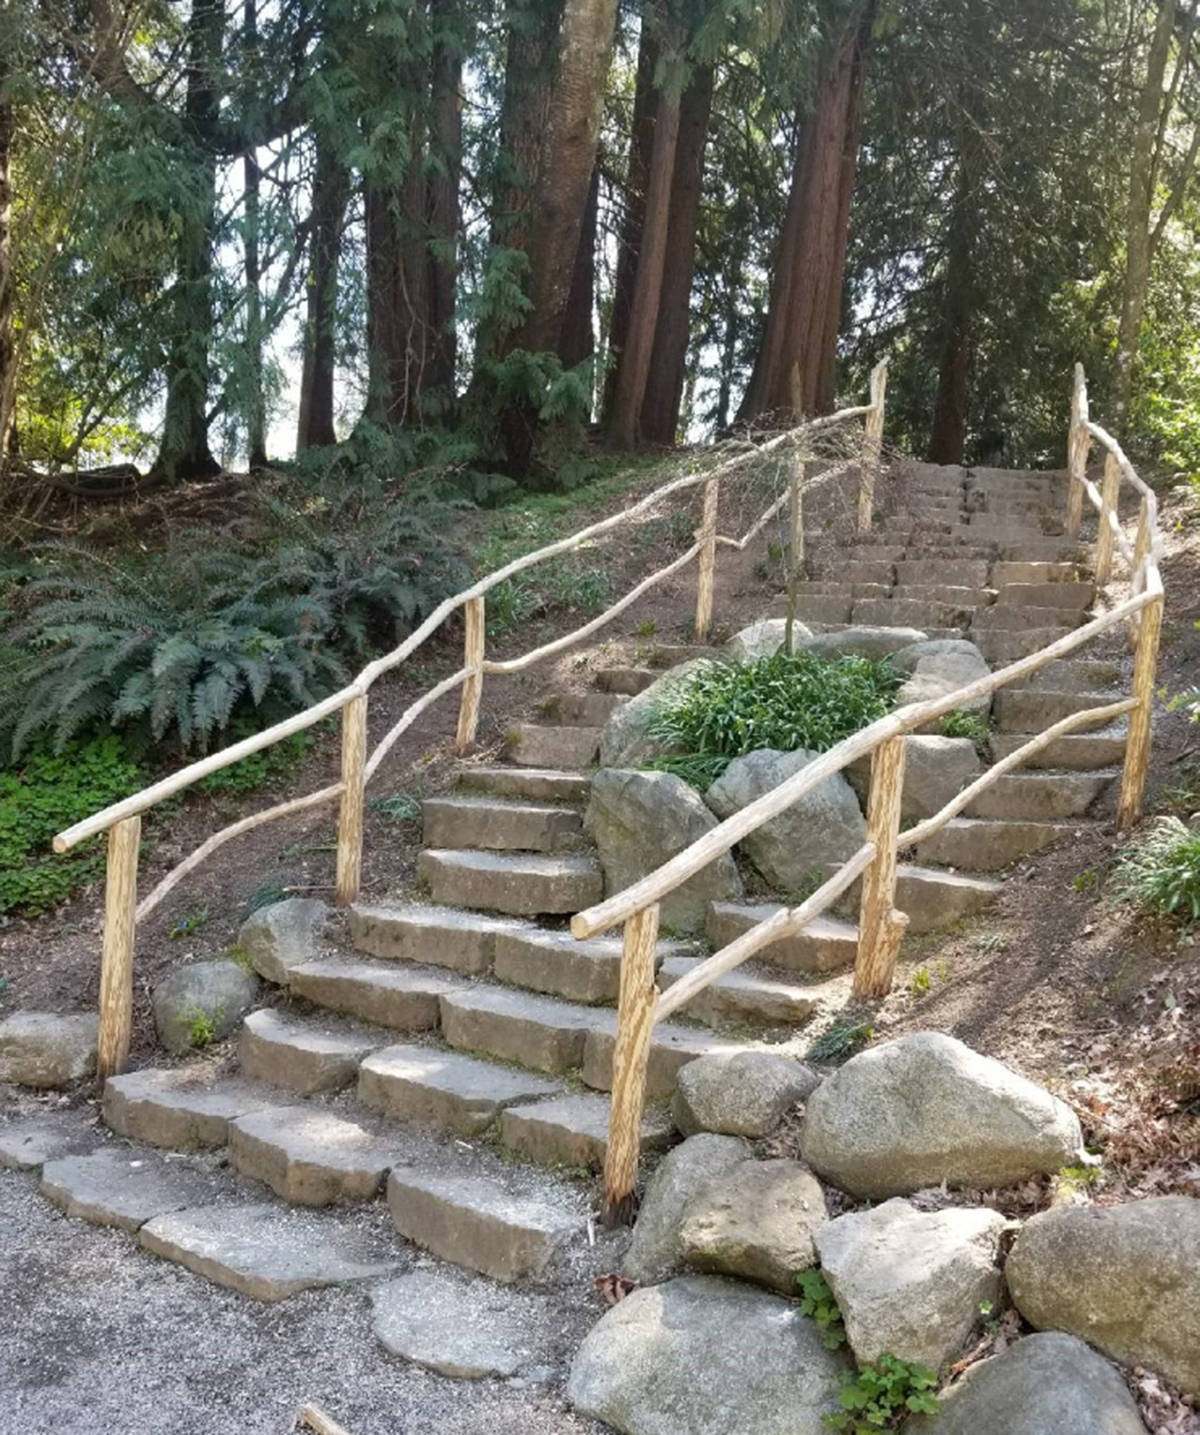 A fallen tree in Langley City's City park has been transformed by municipal workers into a rustic railing in Sendall Gardens (Special to Langley Advance Times)